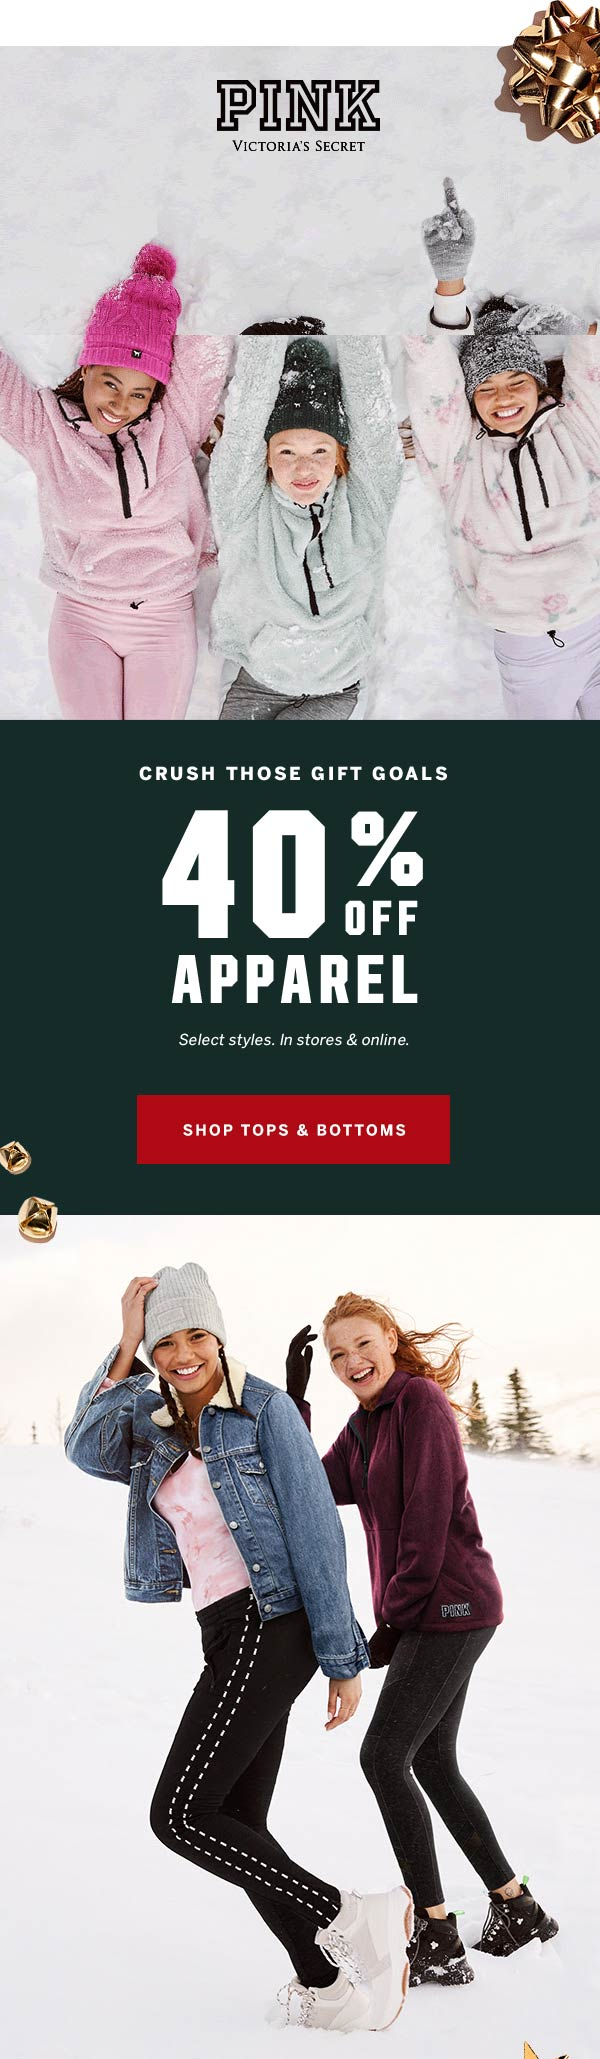 PINK Coupon January 2020 40% off apparel at PINK, ditto online